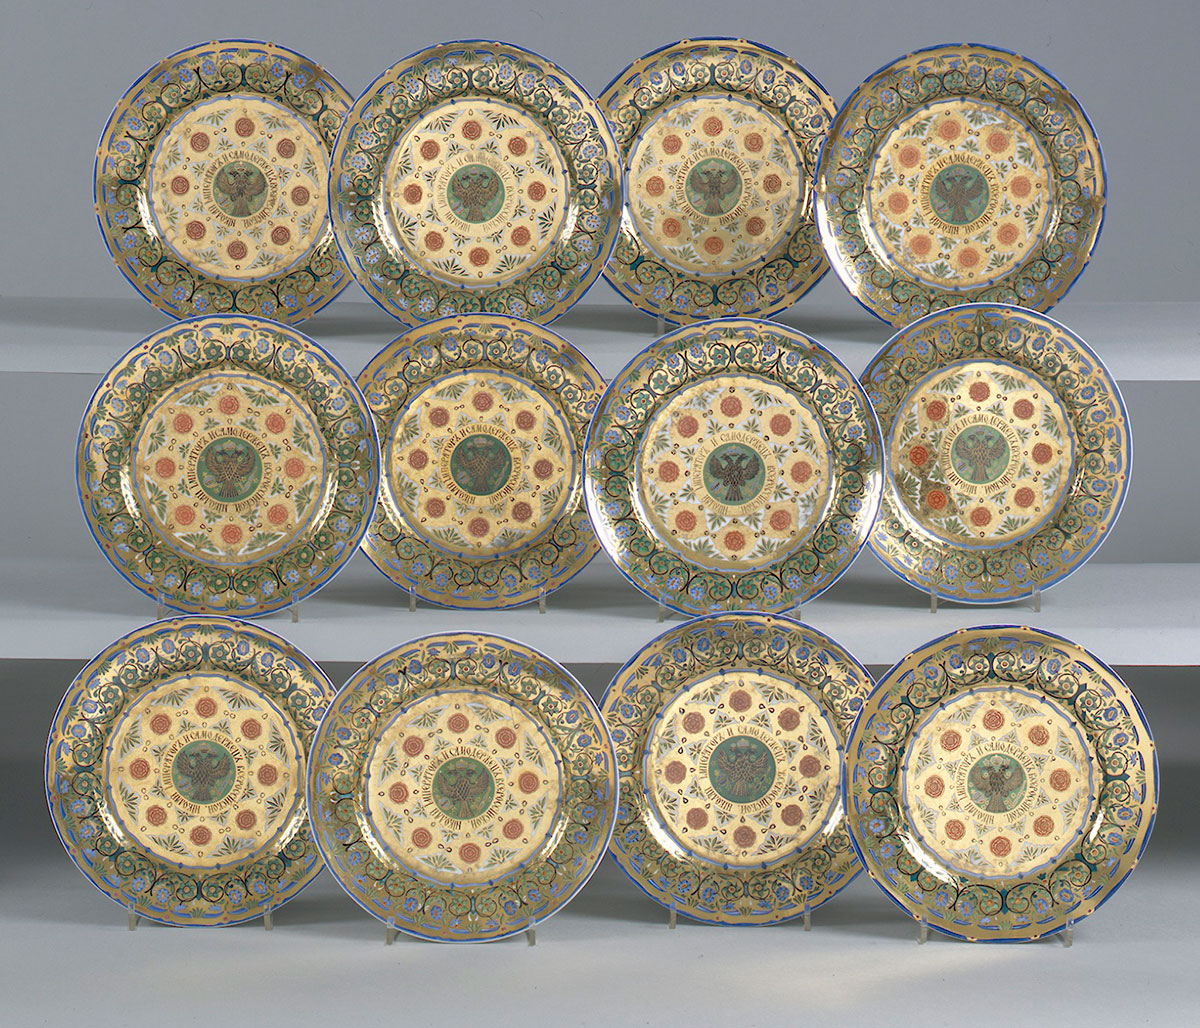 Twelve plates from the Kremlin Service Imperial Russian Porcelain circa 1820